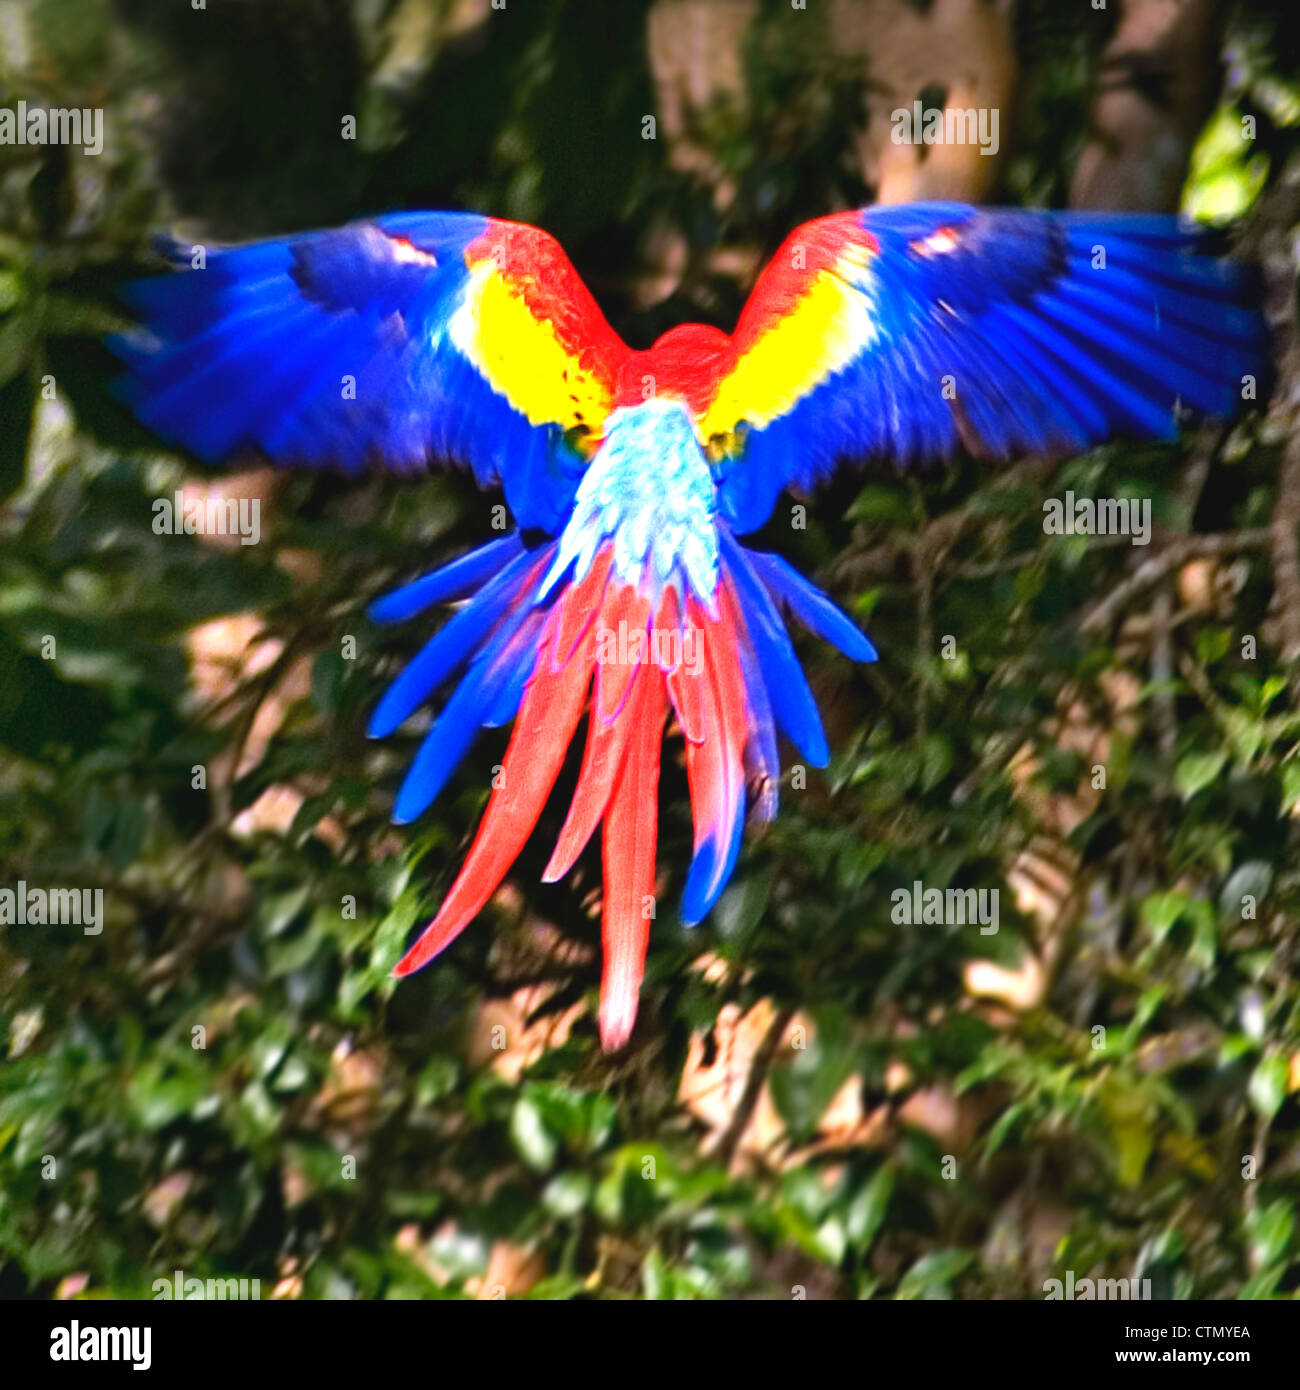 A scarlet macaw takes flight - Stock Image